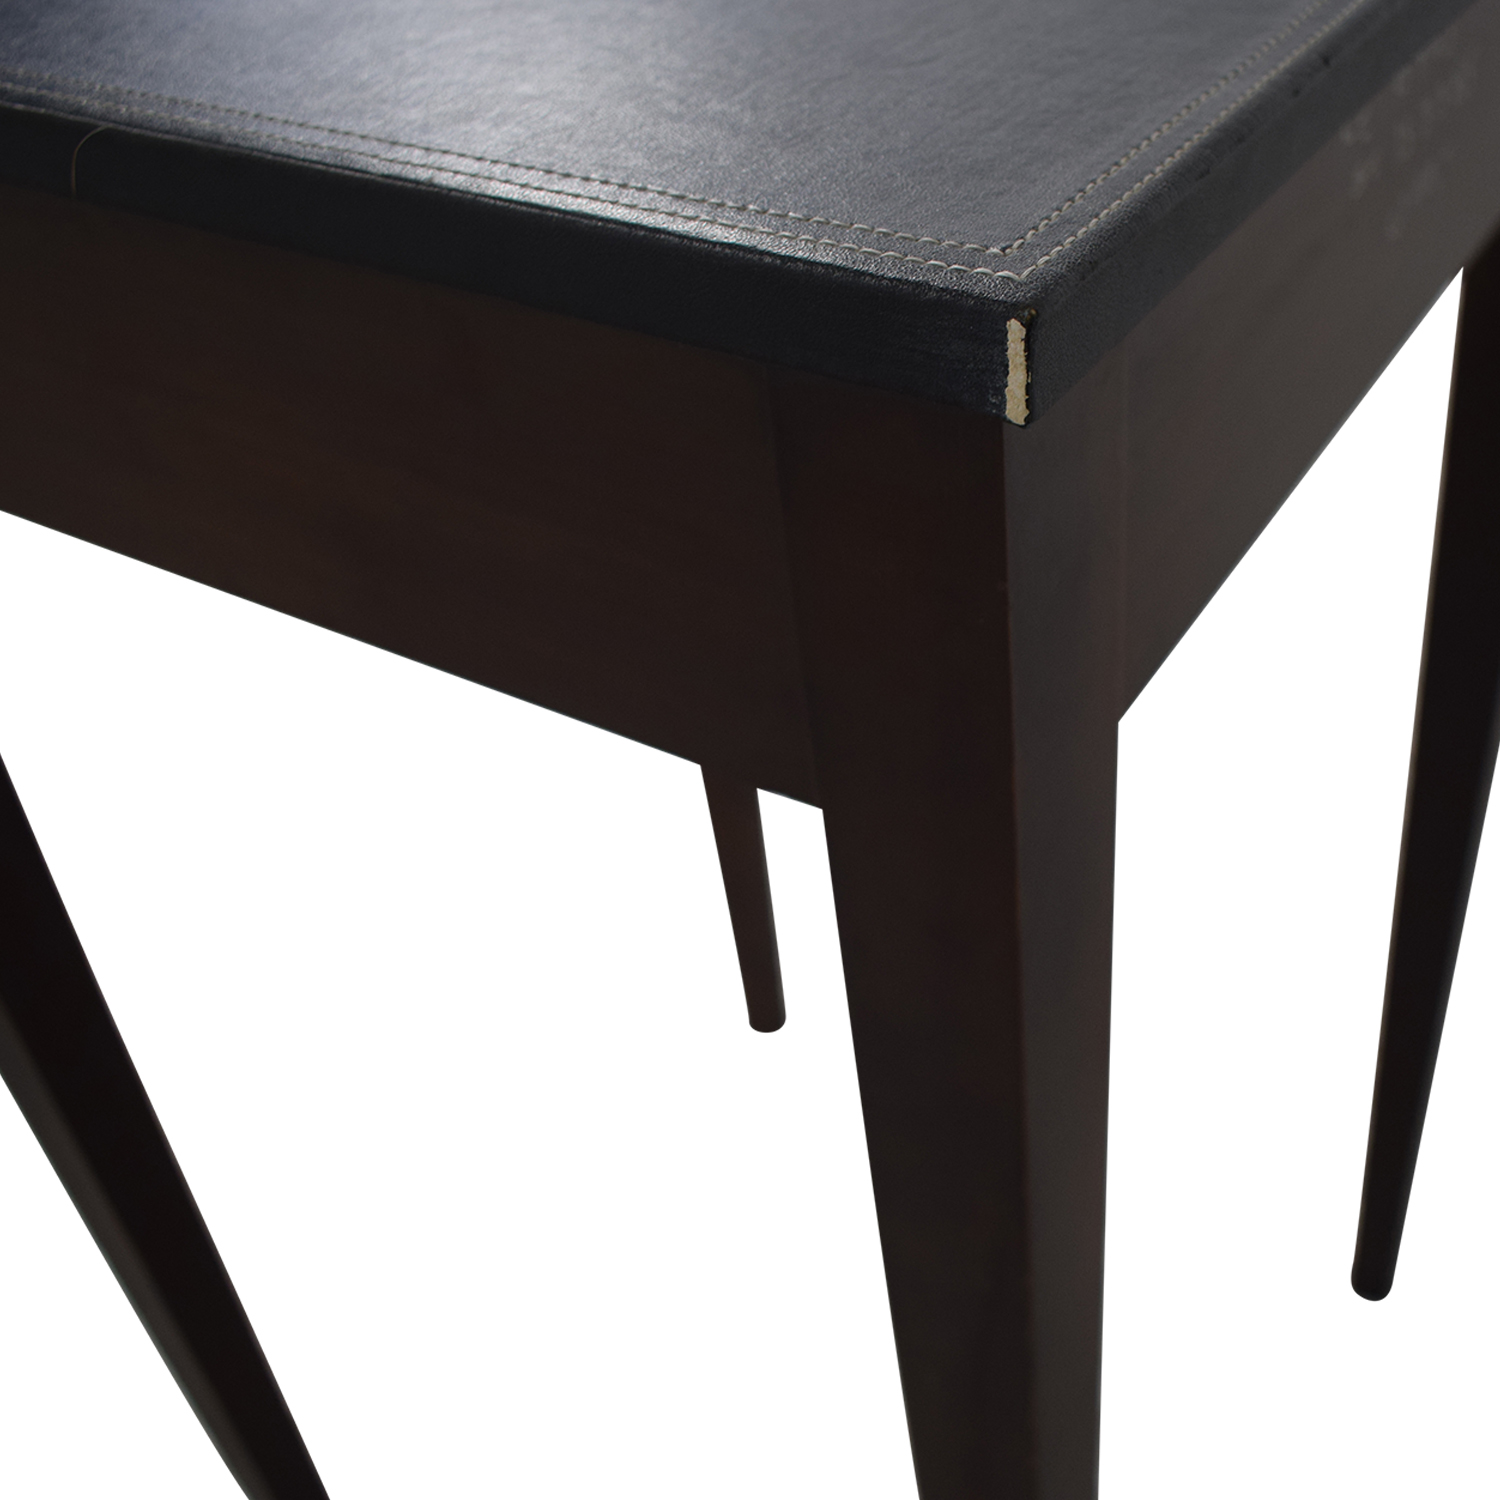 Small Square End Table / Tables